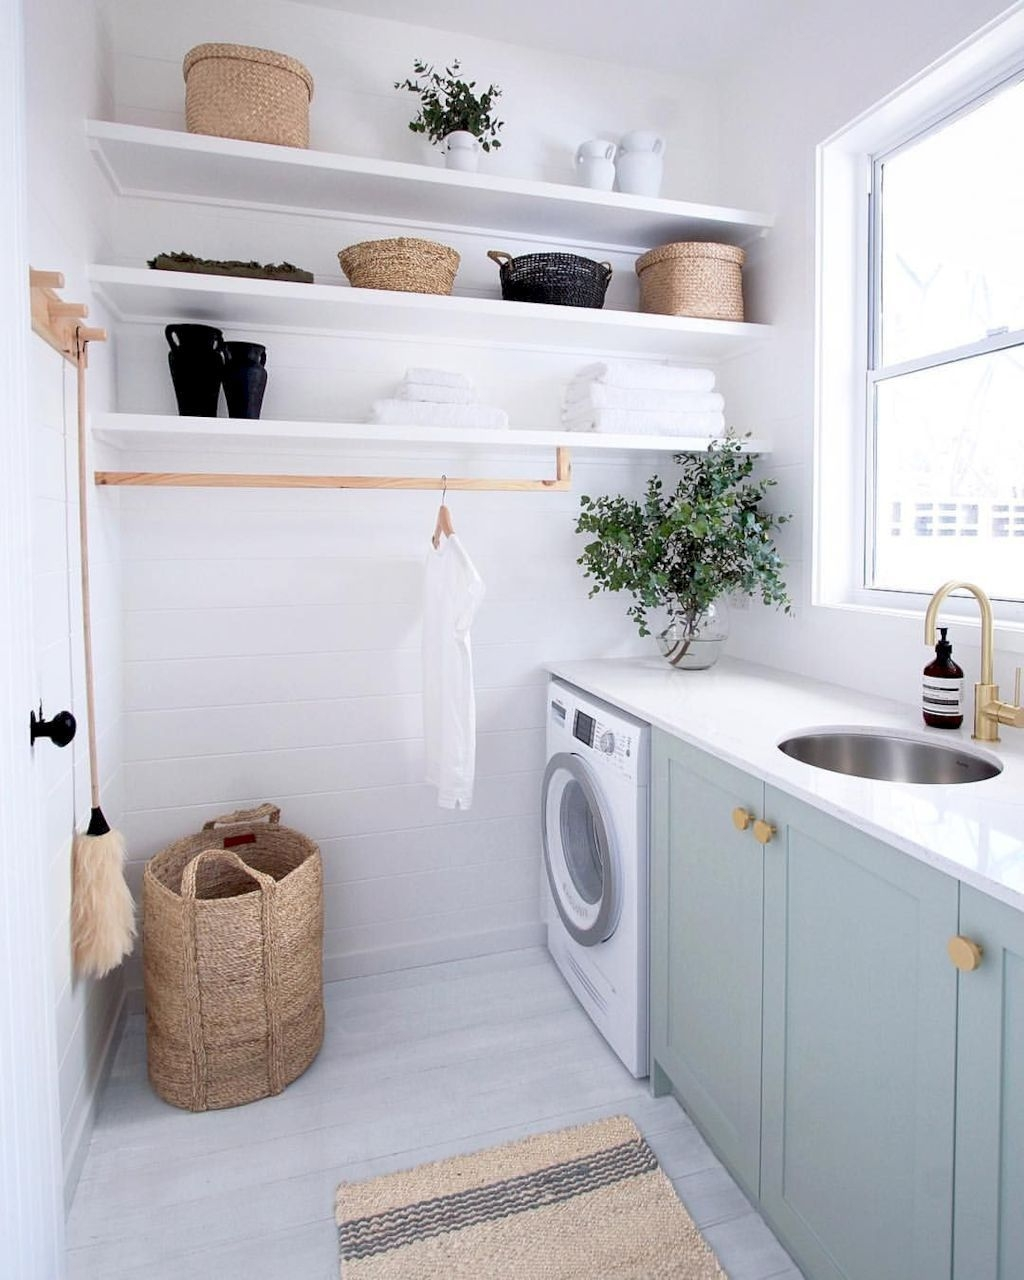 Cute Laundry Room Storage Shelves Ideas To Consider29